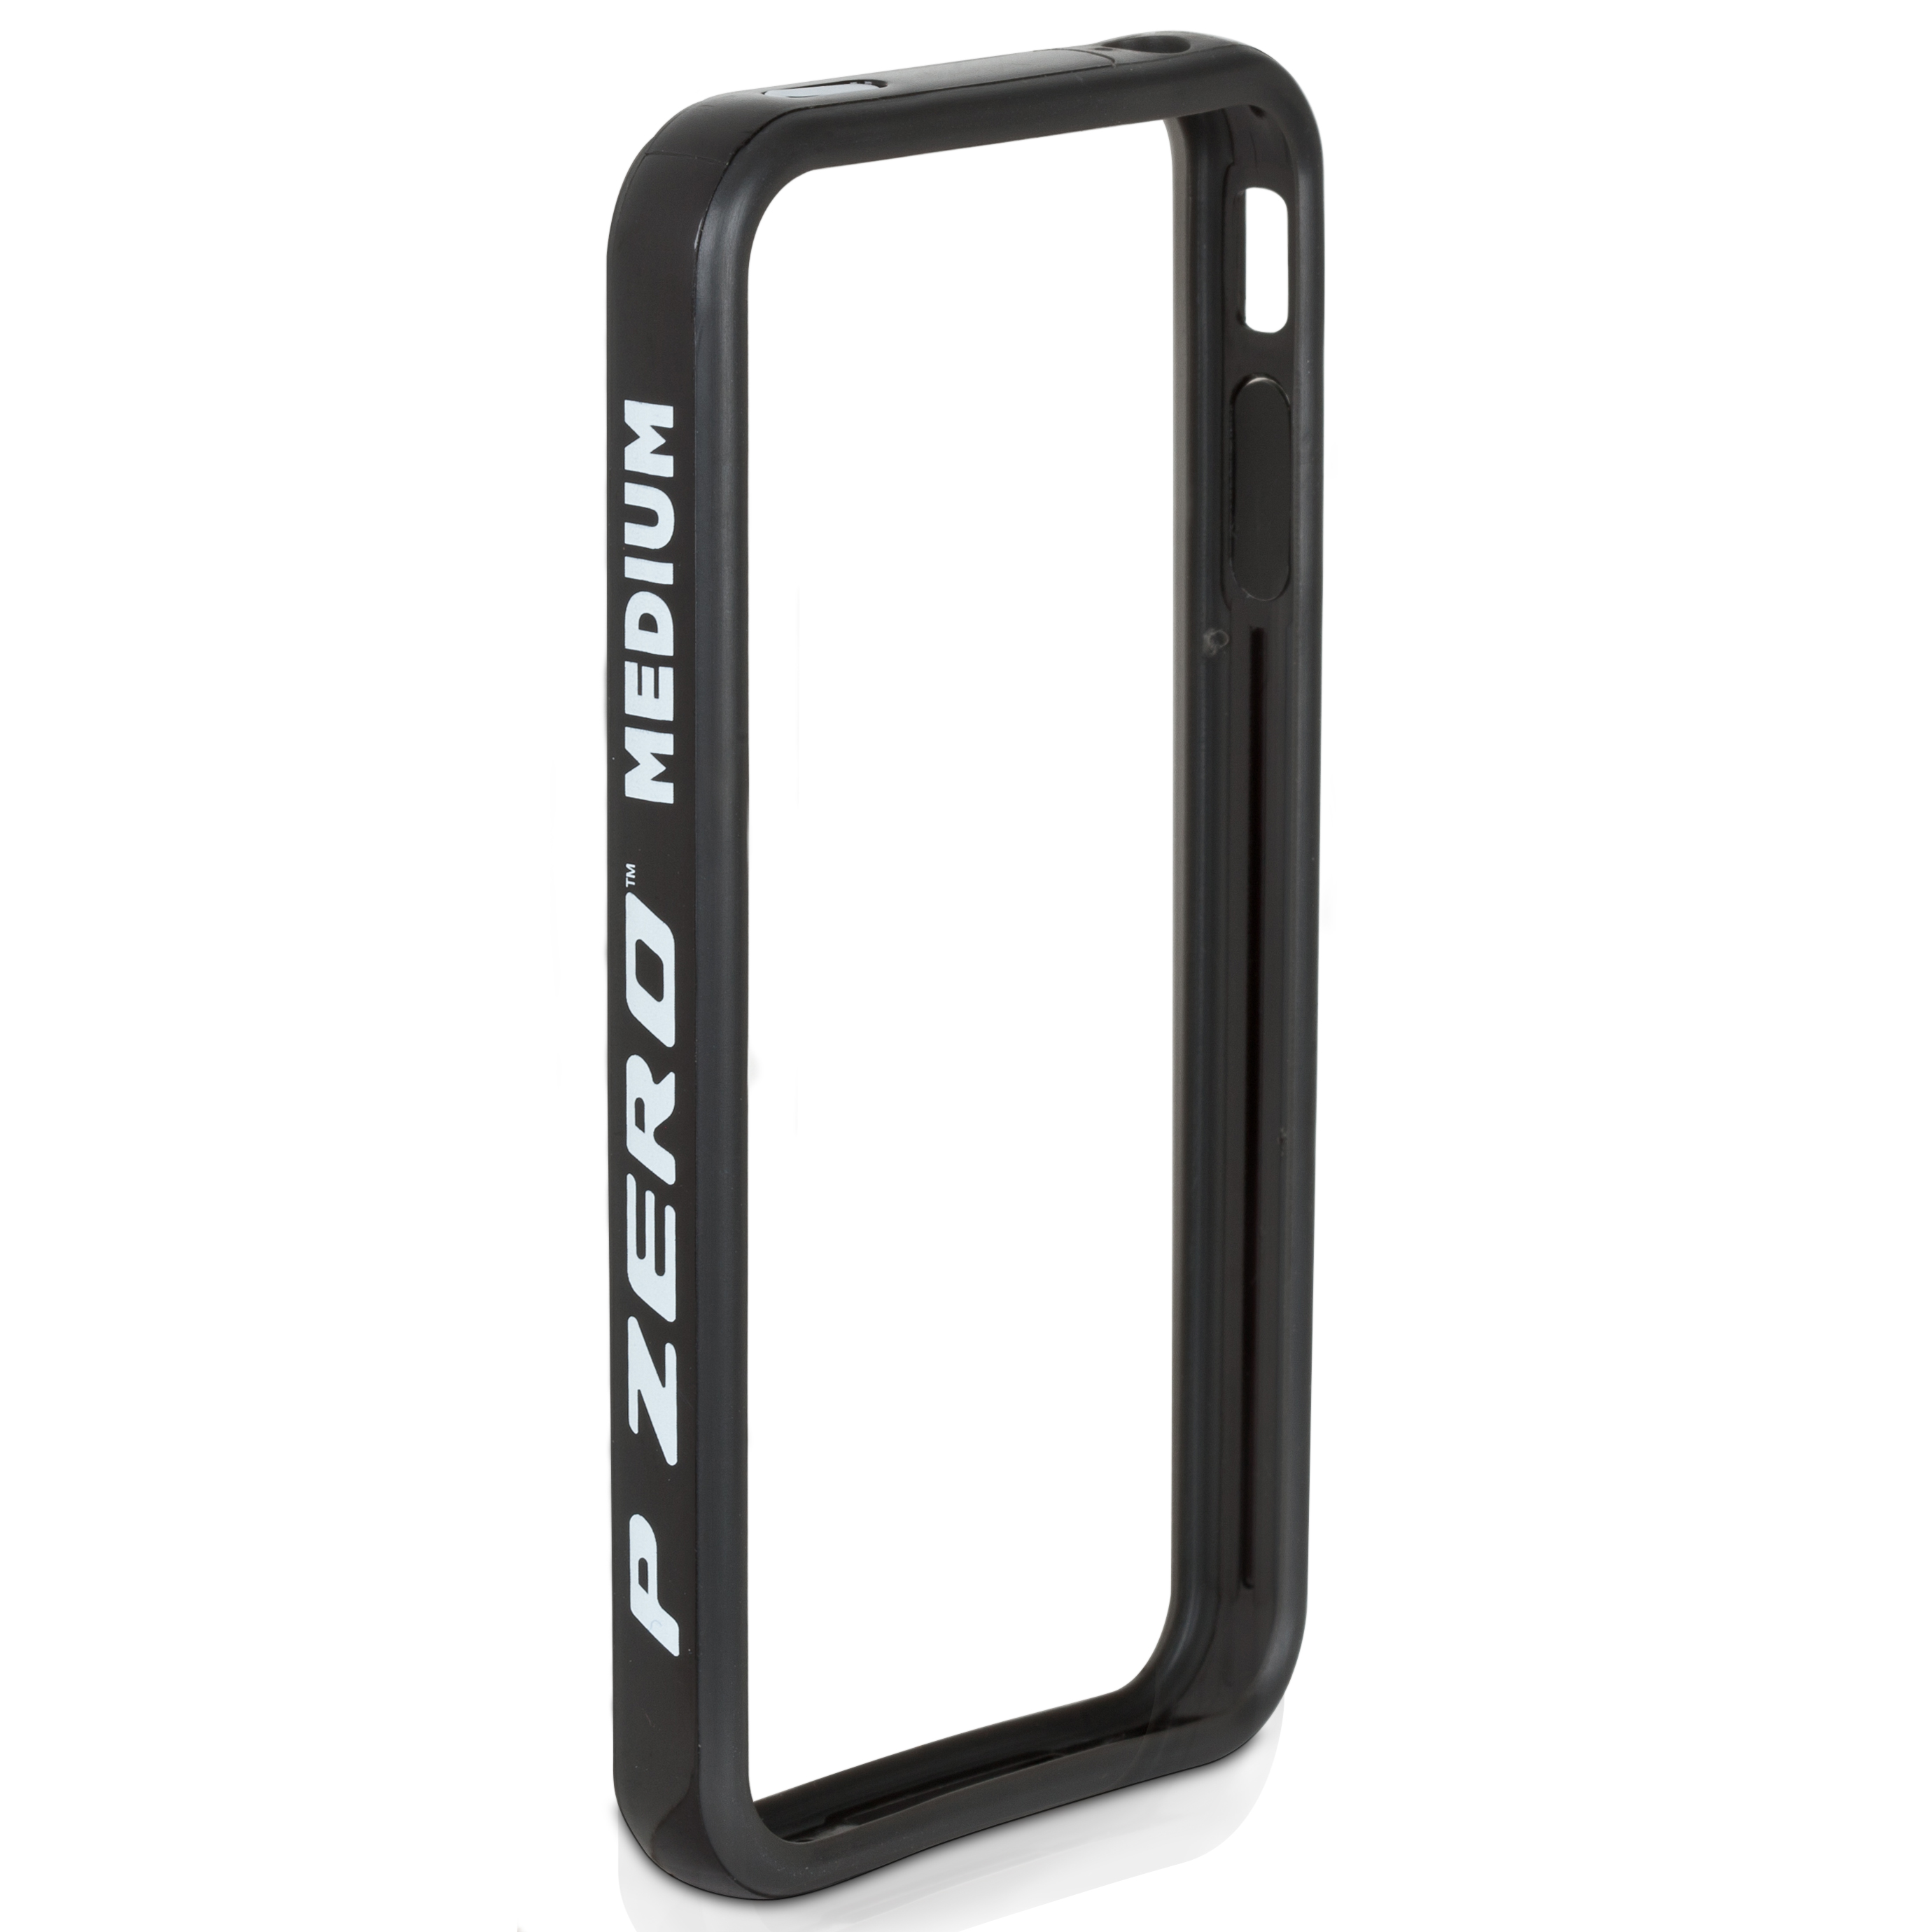 Pirelli Pzero Medium iPhone 4 Bumper